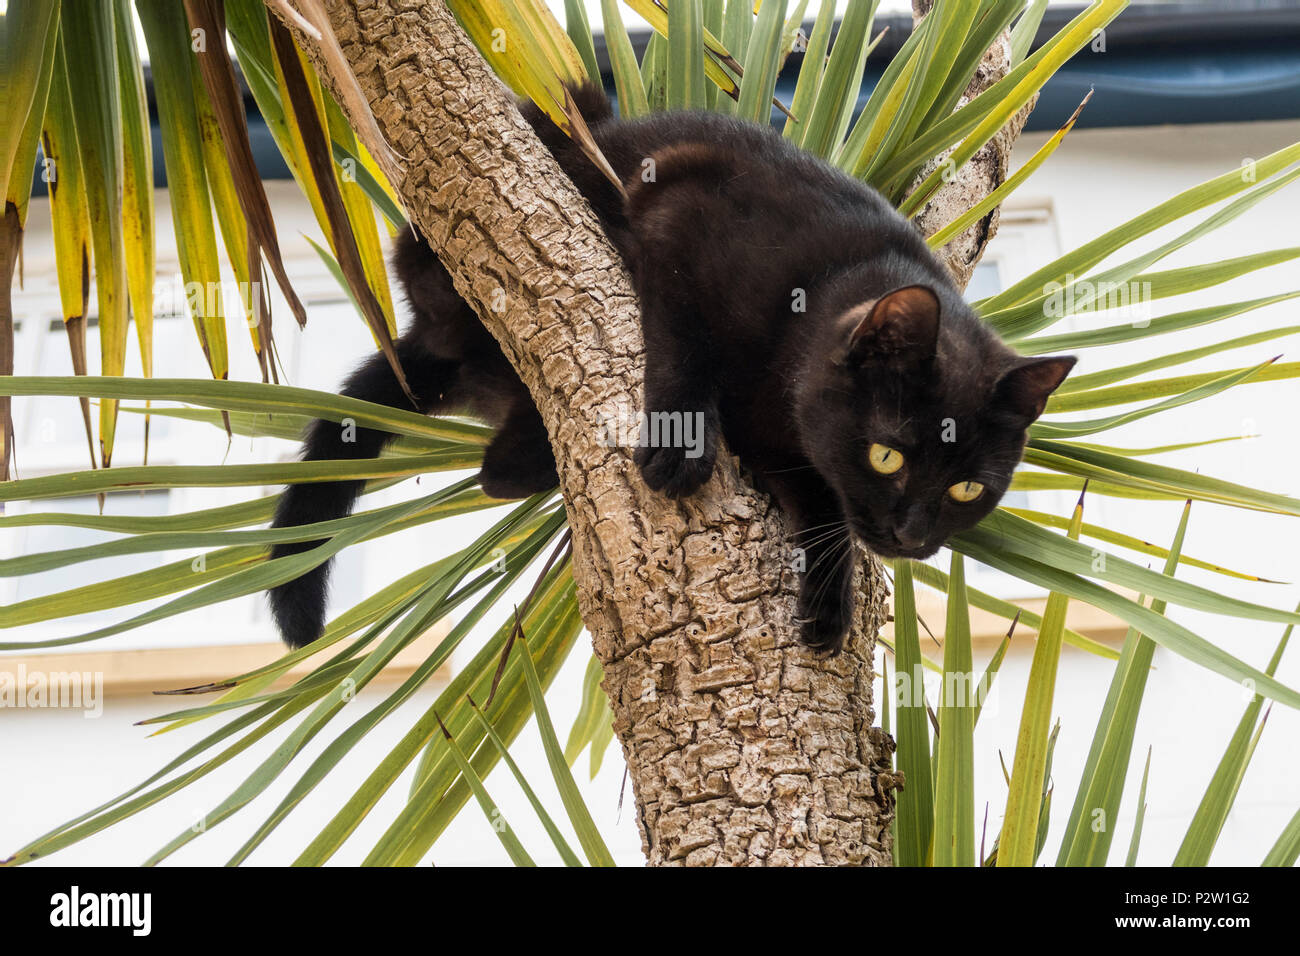 Young black cat climbing up a palm tree (cordyline australis) in a Devon garden. - Stock Image